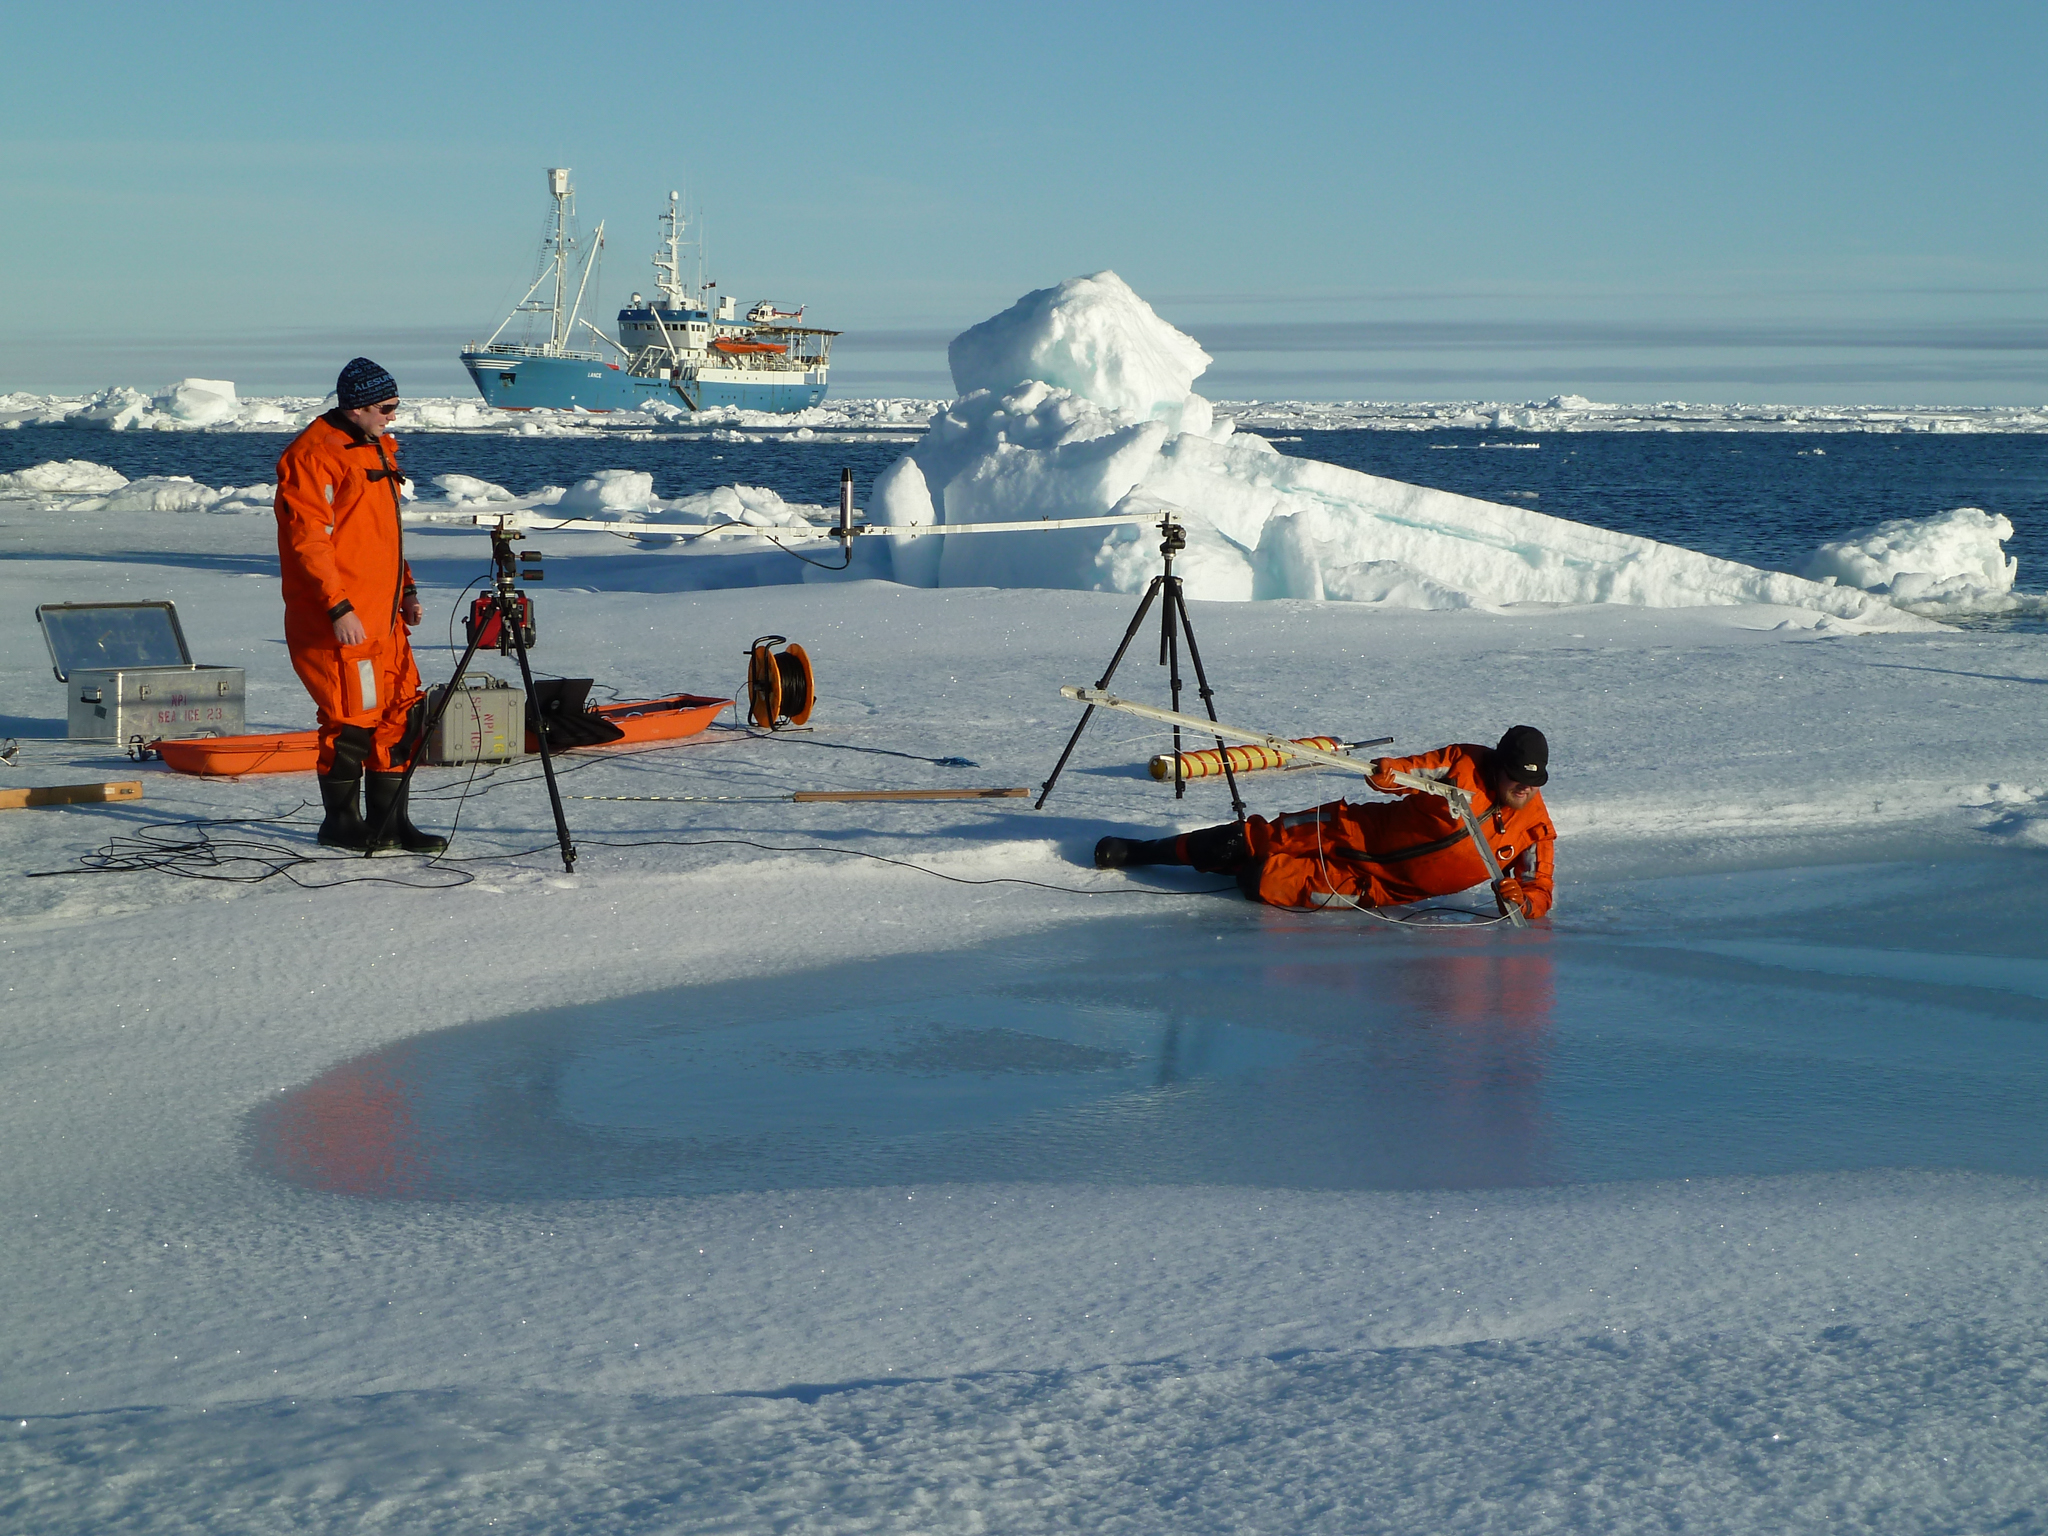 Researchers study melting ponds of various sizes and depths across the surface of the ice to better understand how the makeup of the surface affects reflection and absorption. Open water tends to absorb significantly more of the sun's energy, and ultimately accelerates the melting of surrounding sea ice. Photograph by Sebastian Gerland, Norwegian Polar Institute